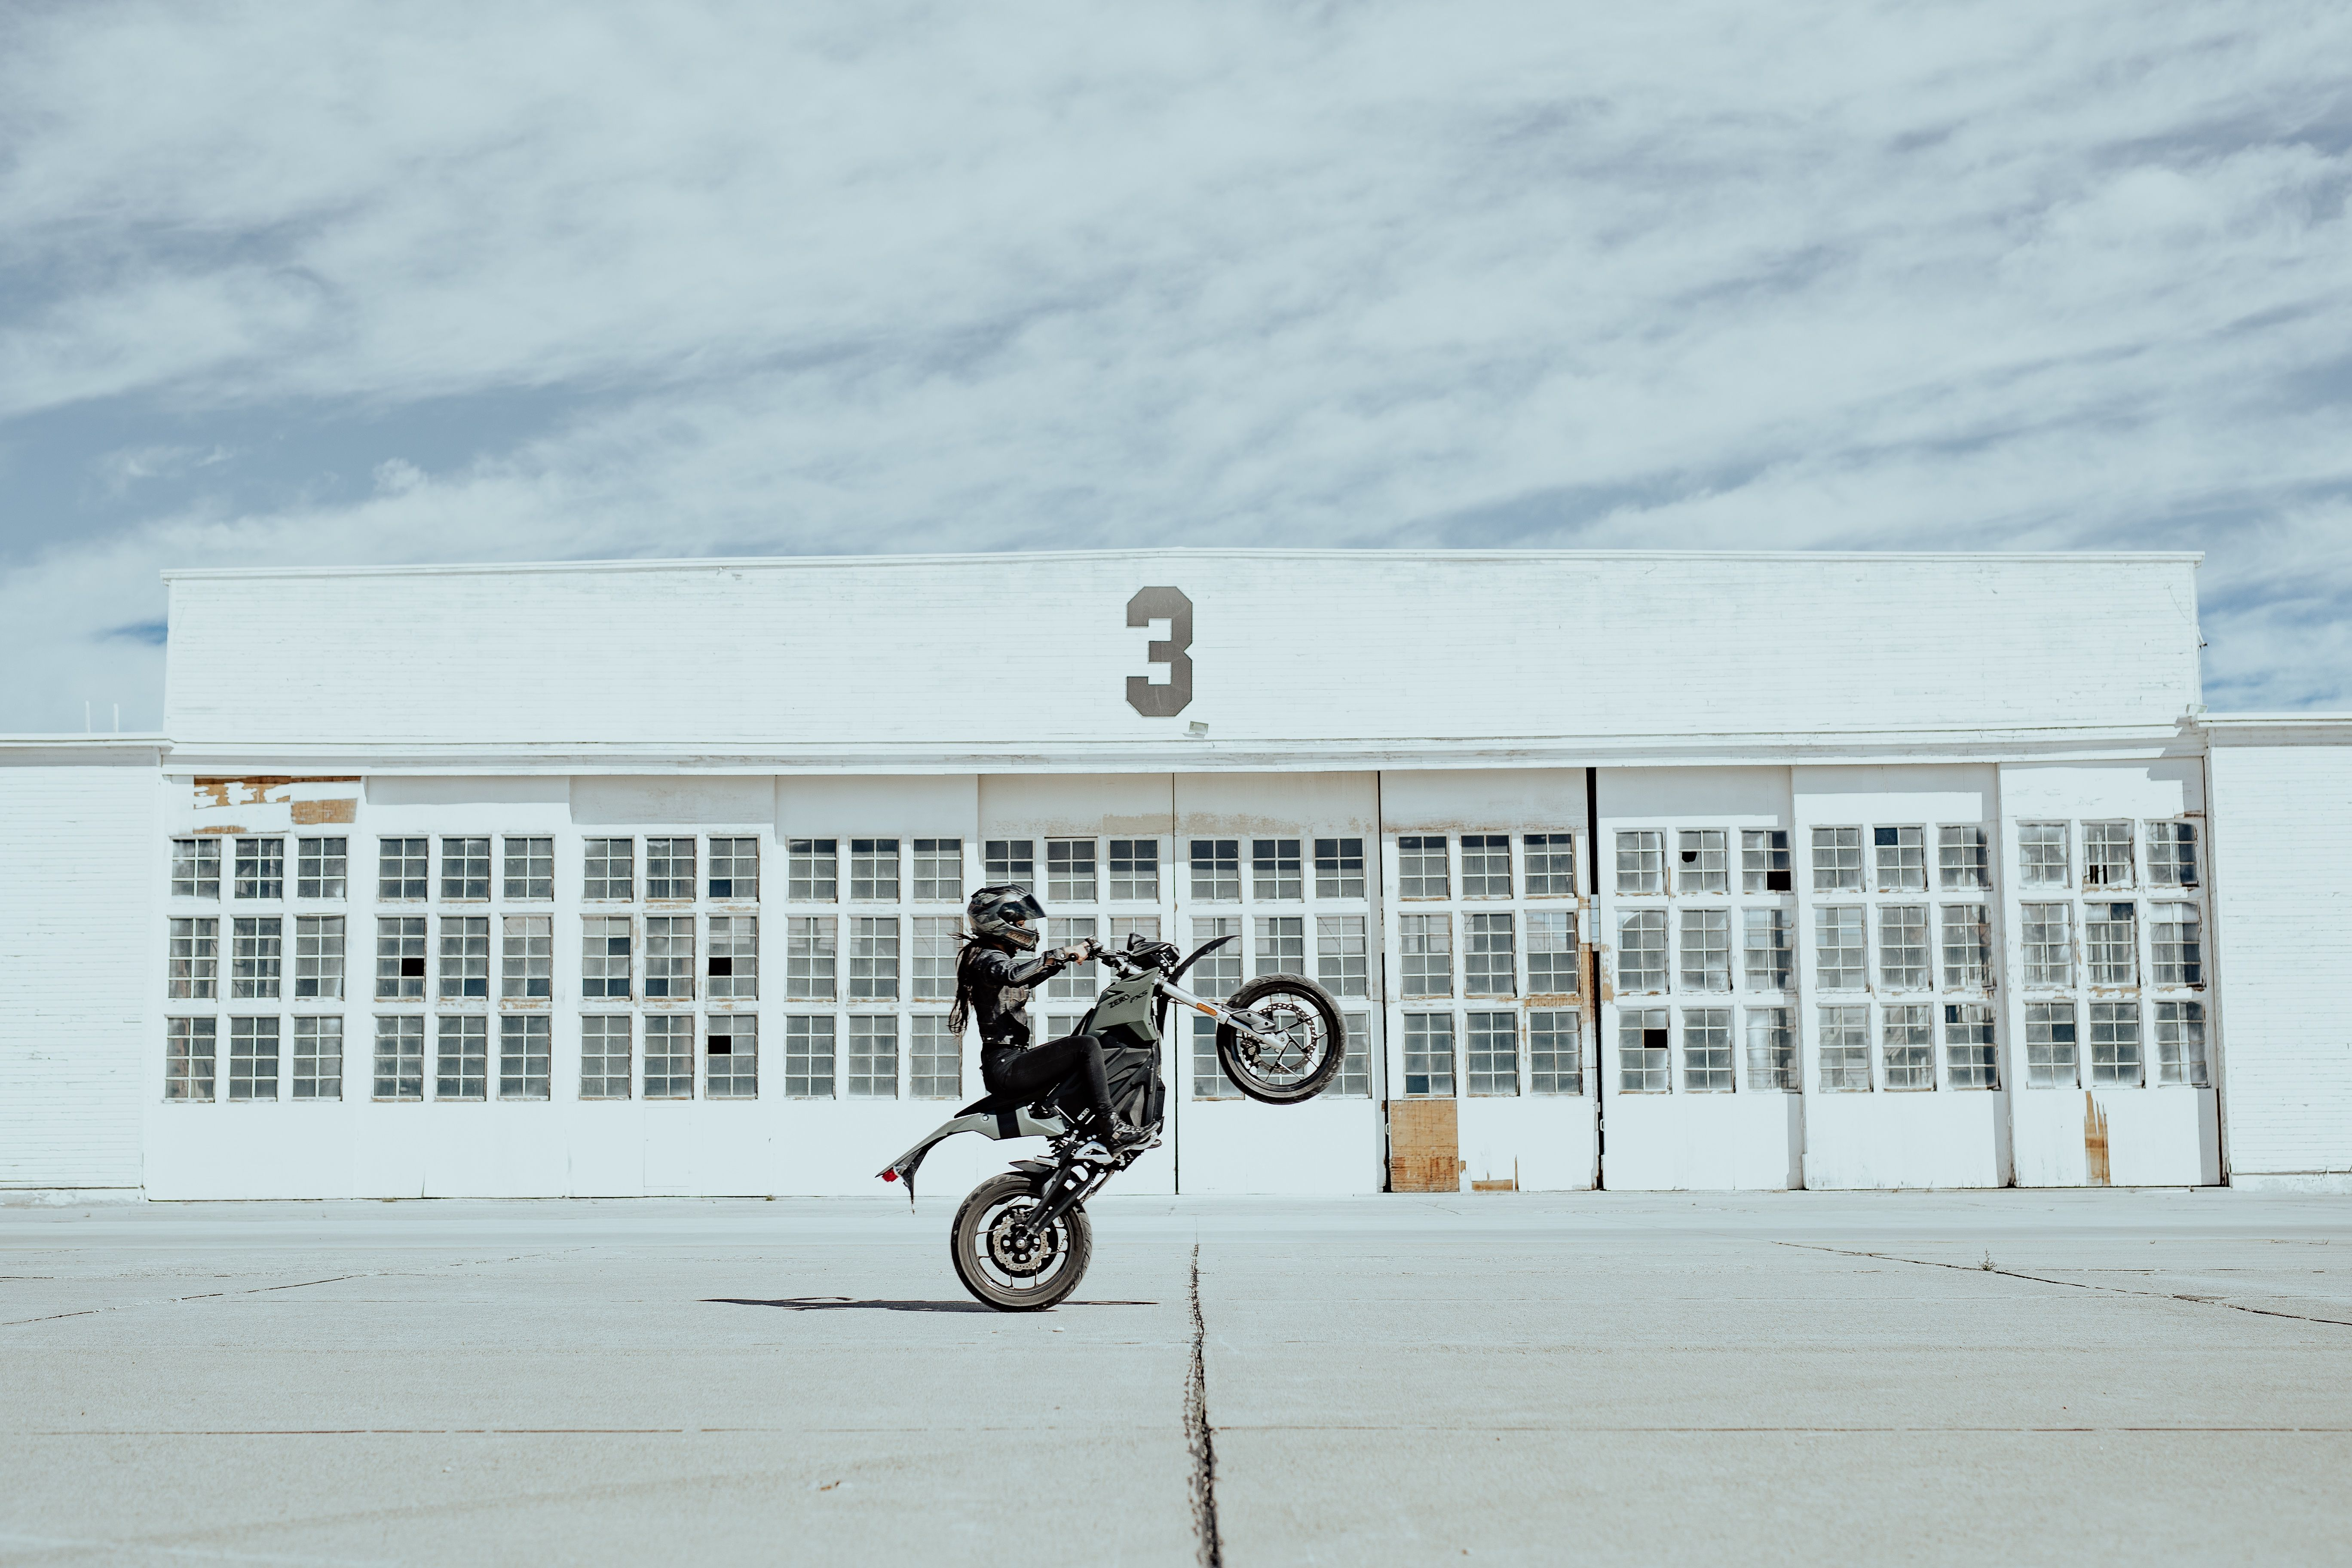 Zero's New Electric Motorcycles for 2019